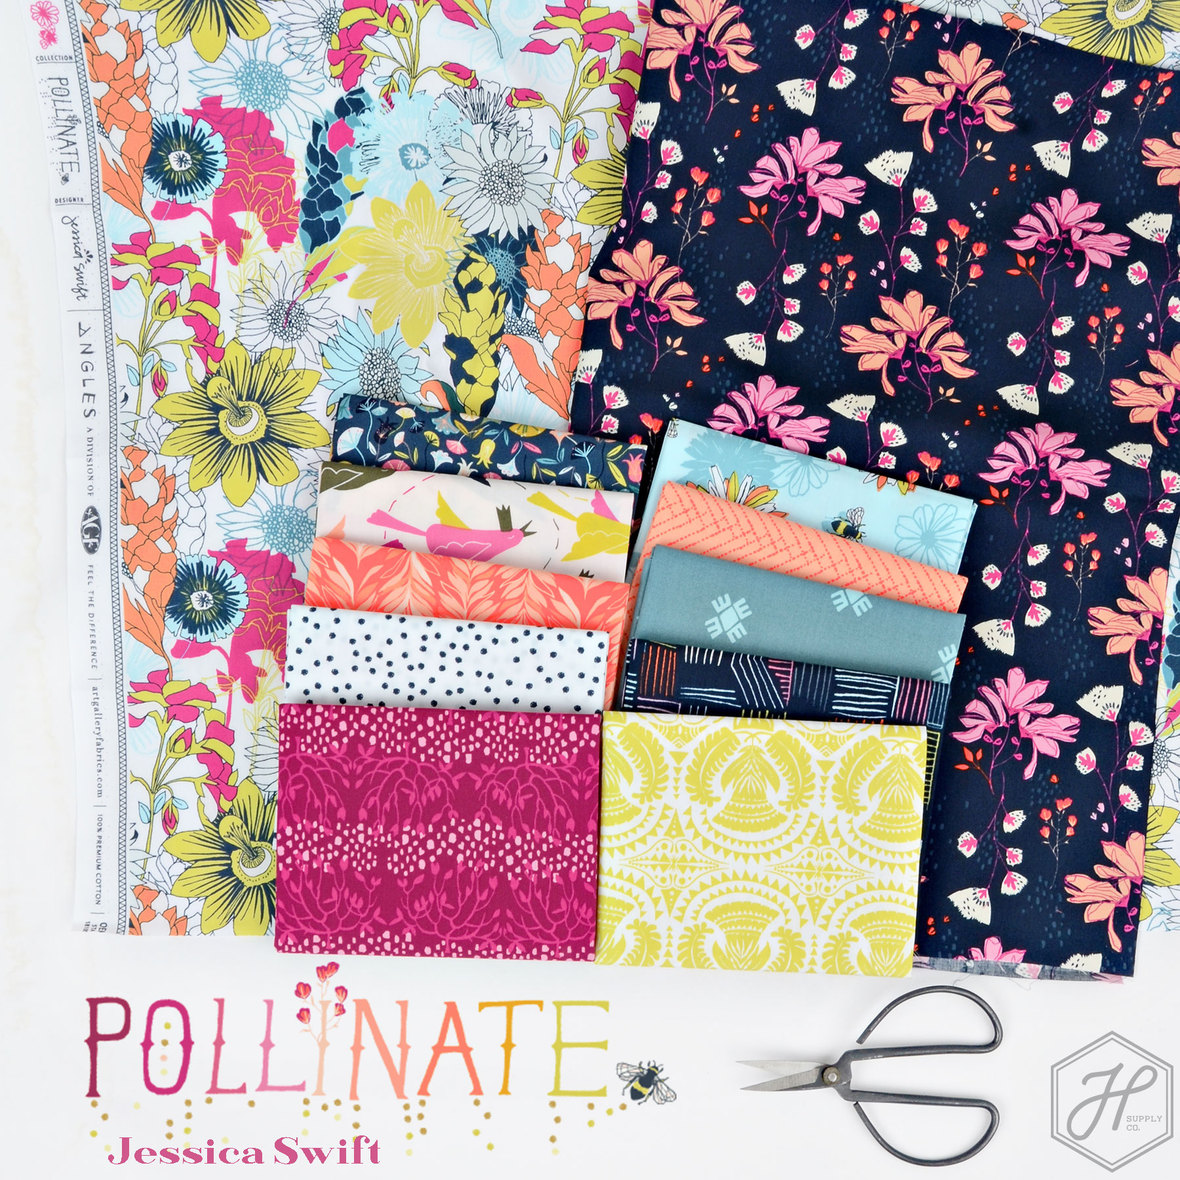 Pollinate-Jessica-Swift-fabric-for-Art-Gallery-at-Hawthorne-Supply-Co